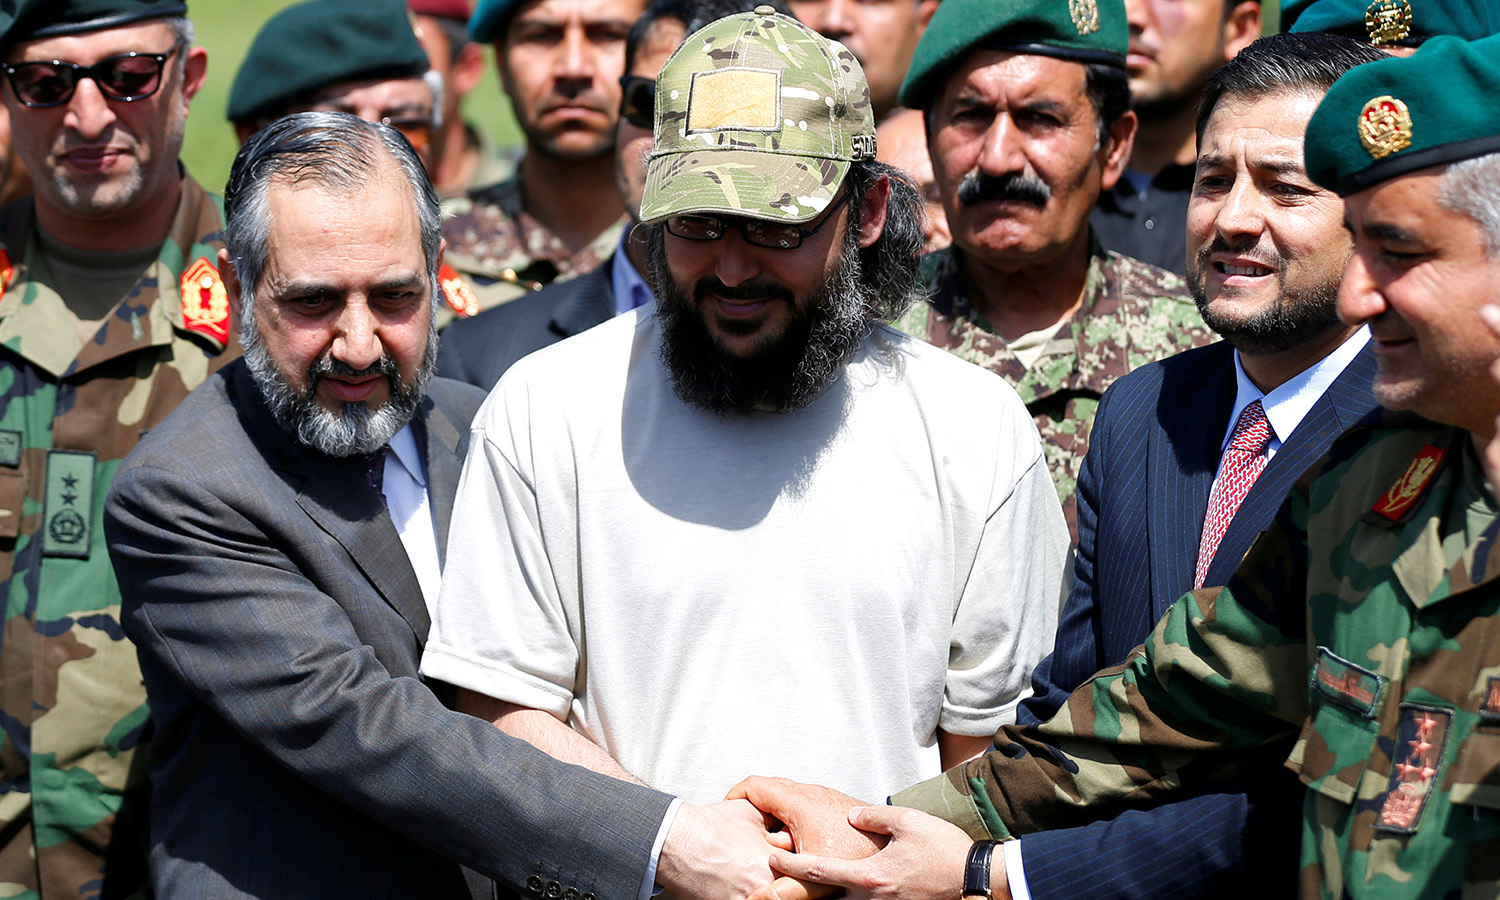 Ali Haider Gilani shakes hands with Afghans and Pakistan's Ambassador to Afghanistan Syed Abrar Hussain (L). -Reuters